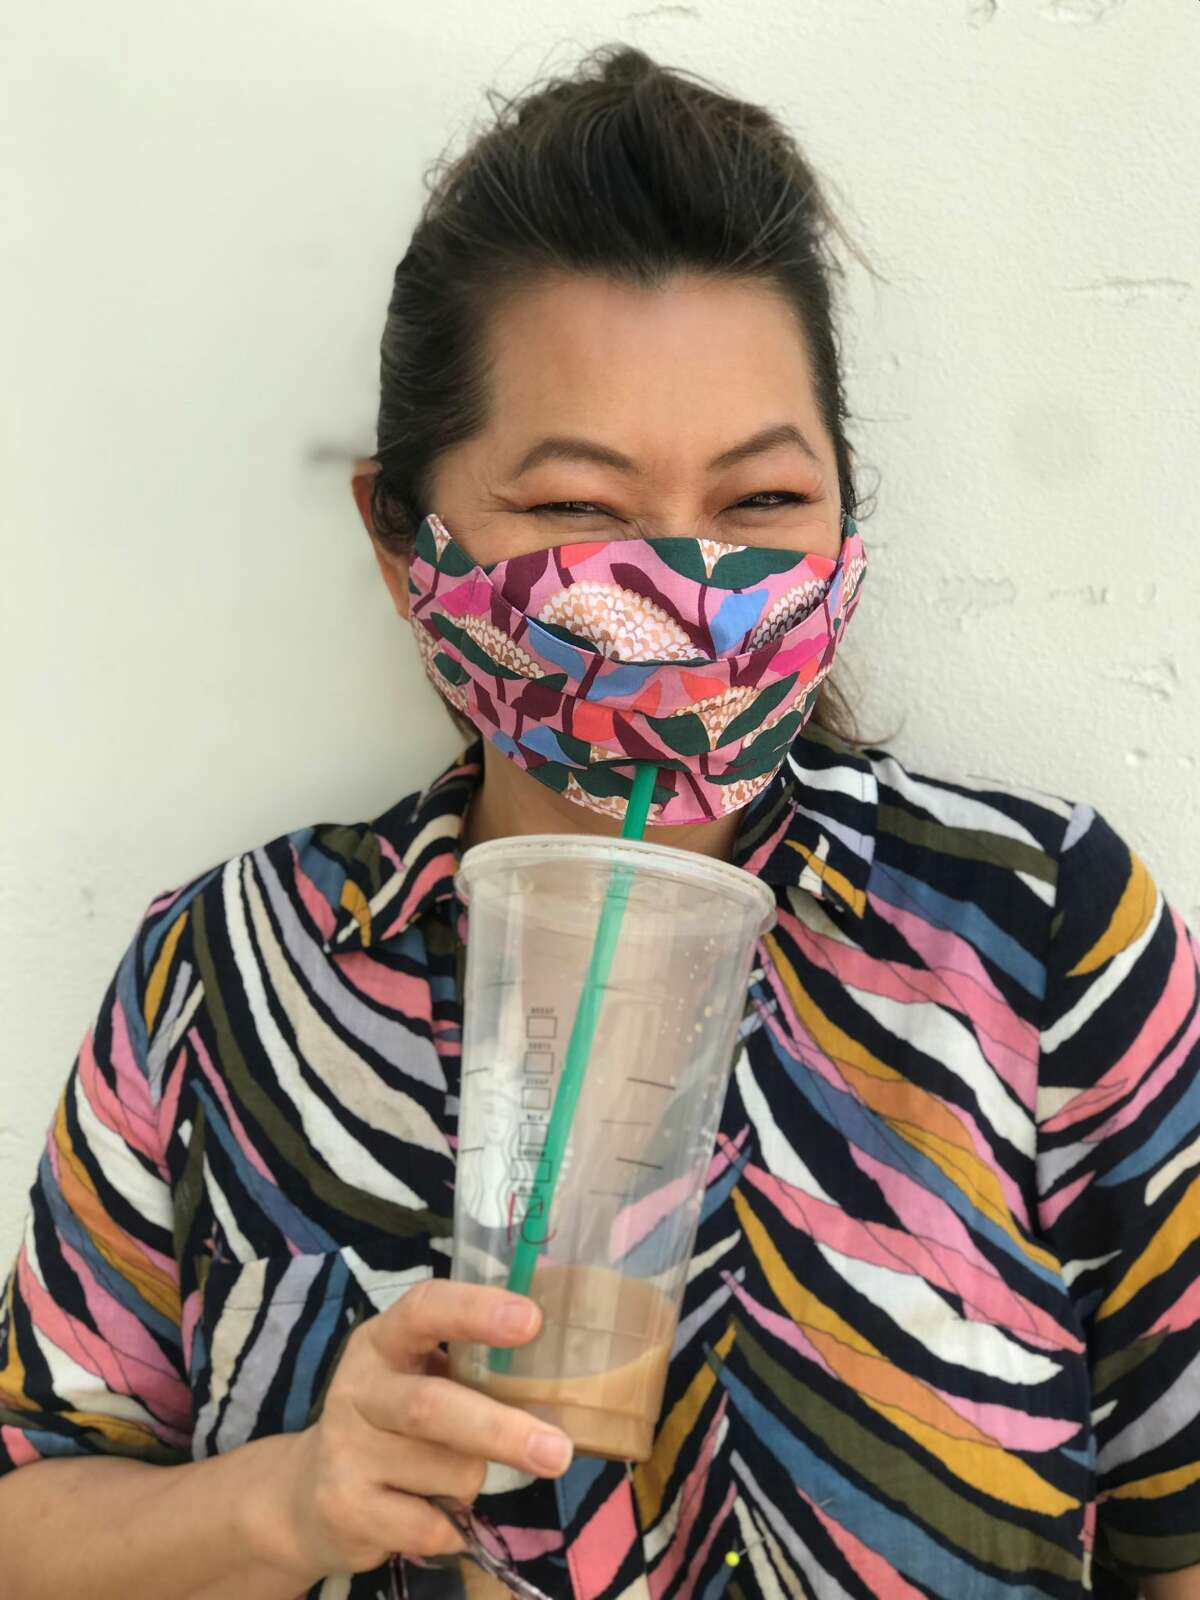 Project Runway winner and Houston fashion designer Chloe Dao wears her Safely Sip in Style mask, $25, which allow users to sip drinks through a straw without removing the mask.